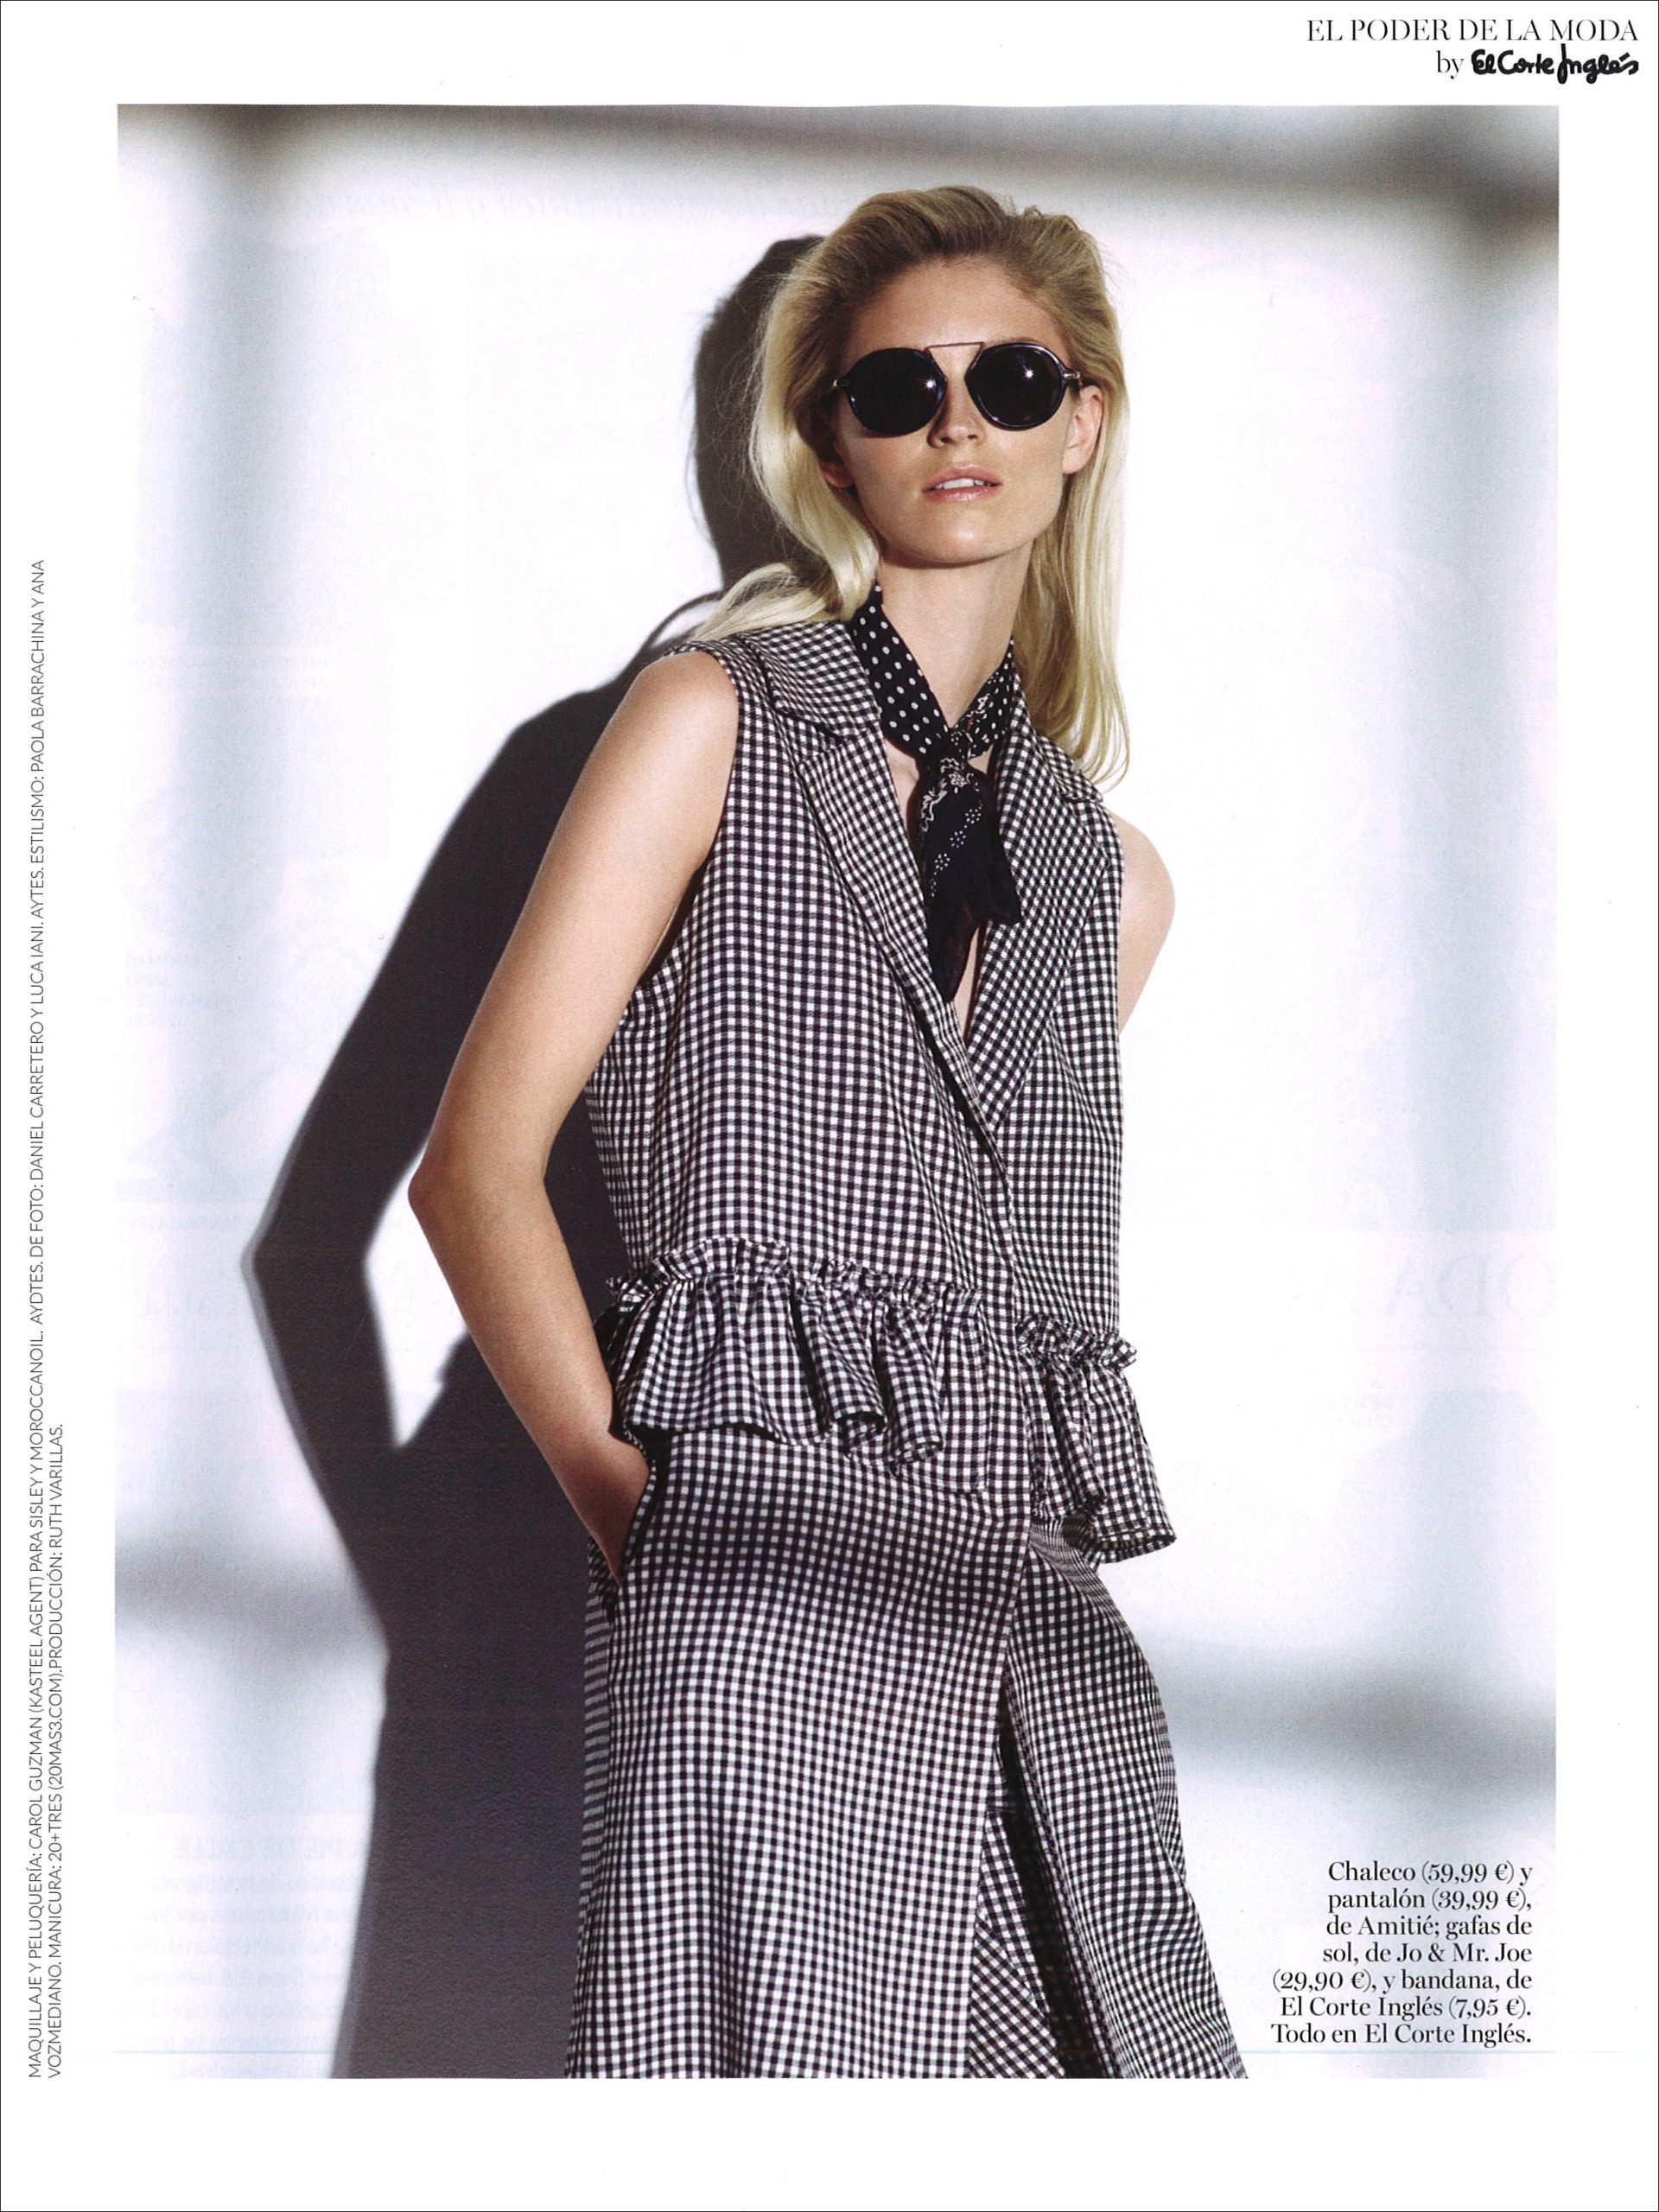 Helena Greyhorse by Cristina Lopez for Vogue Spain